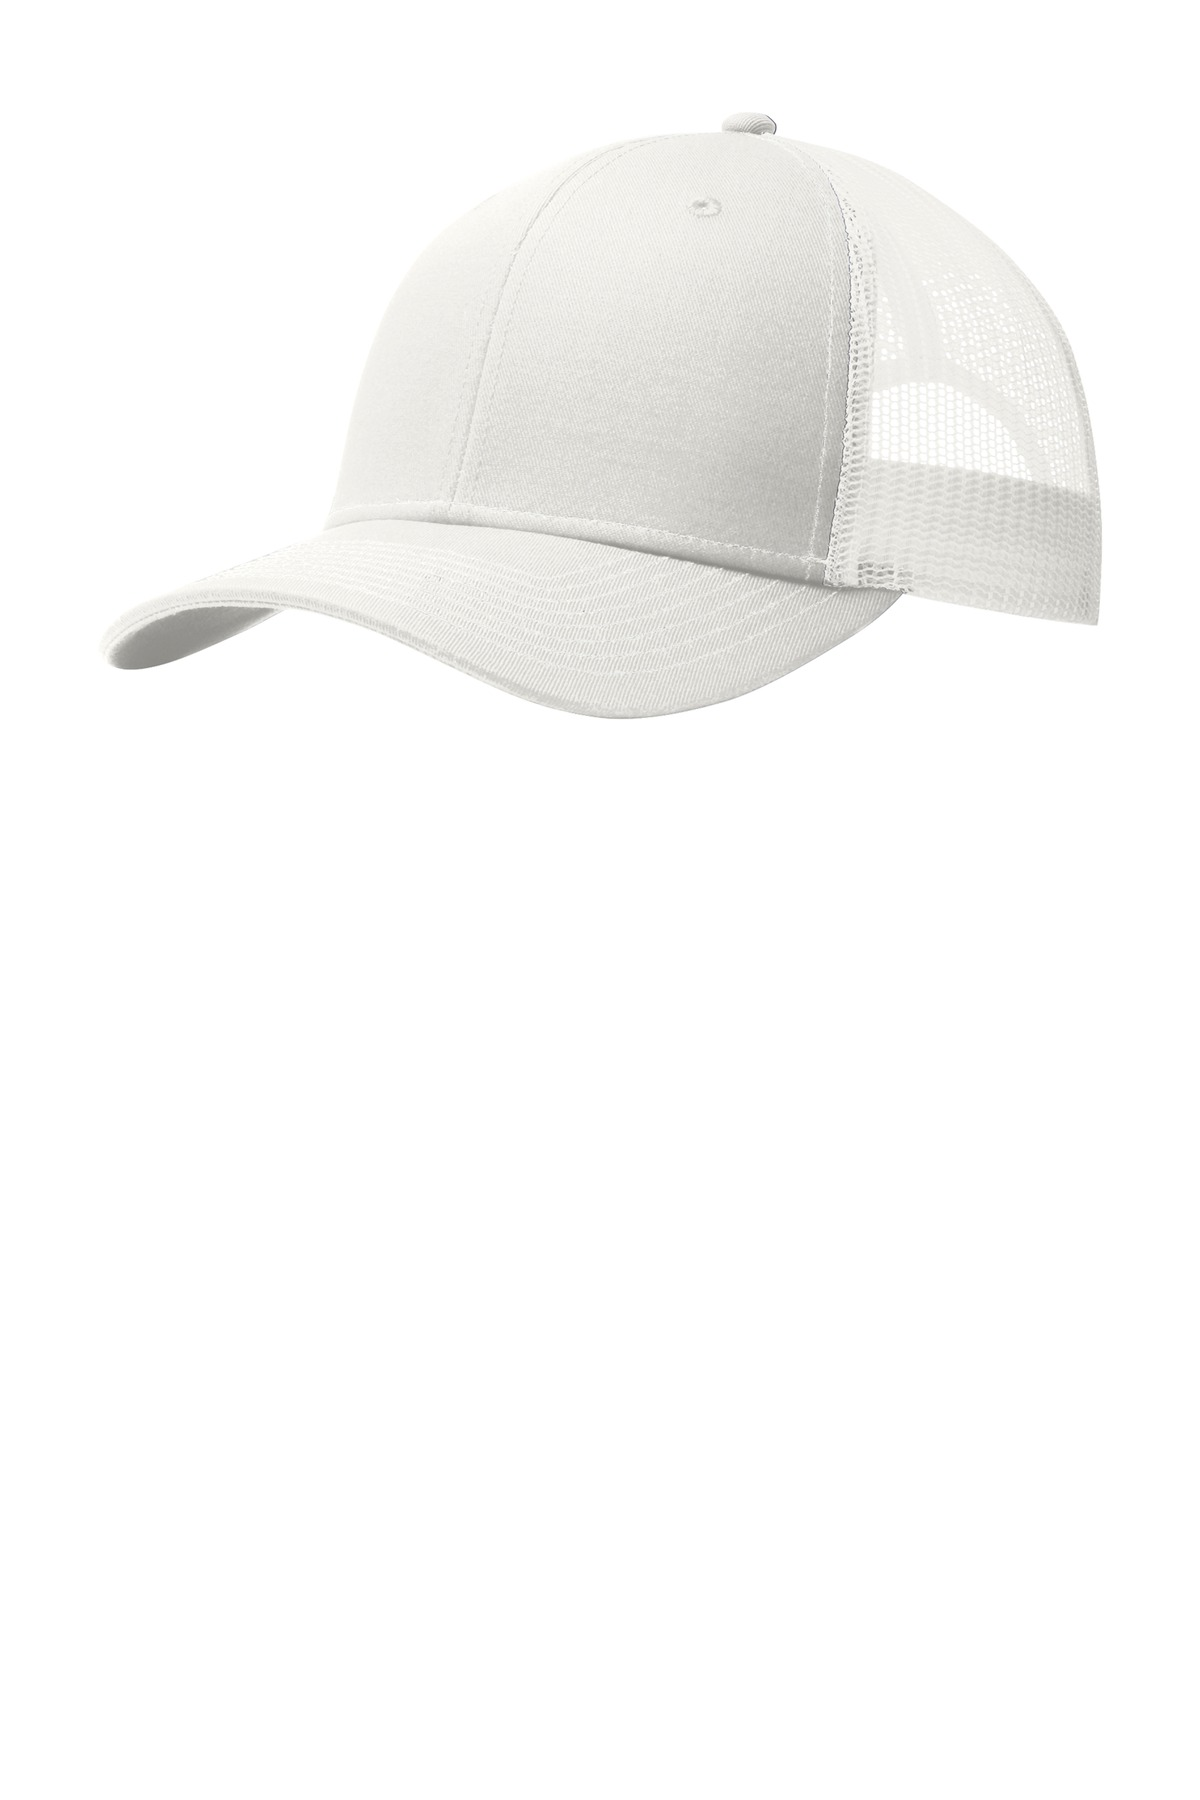 Port Authority ®  Snapback Trucker Cap. C112 - White